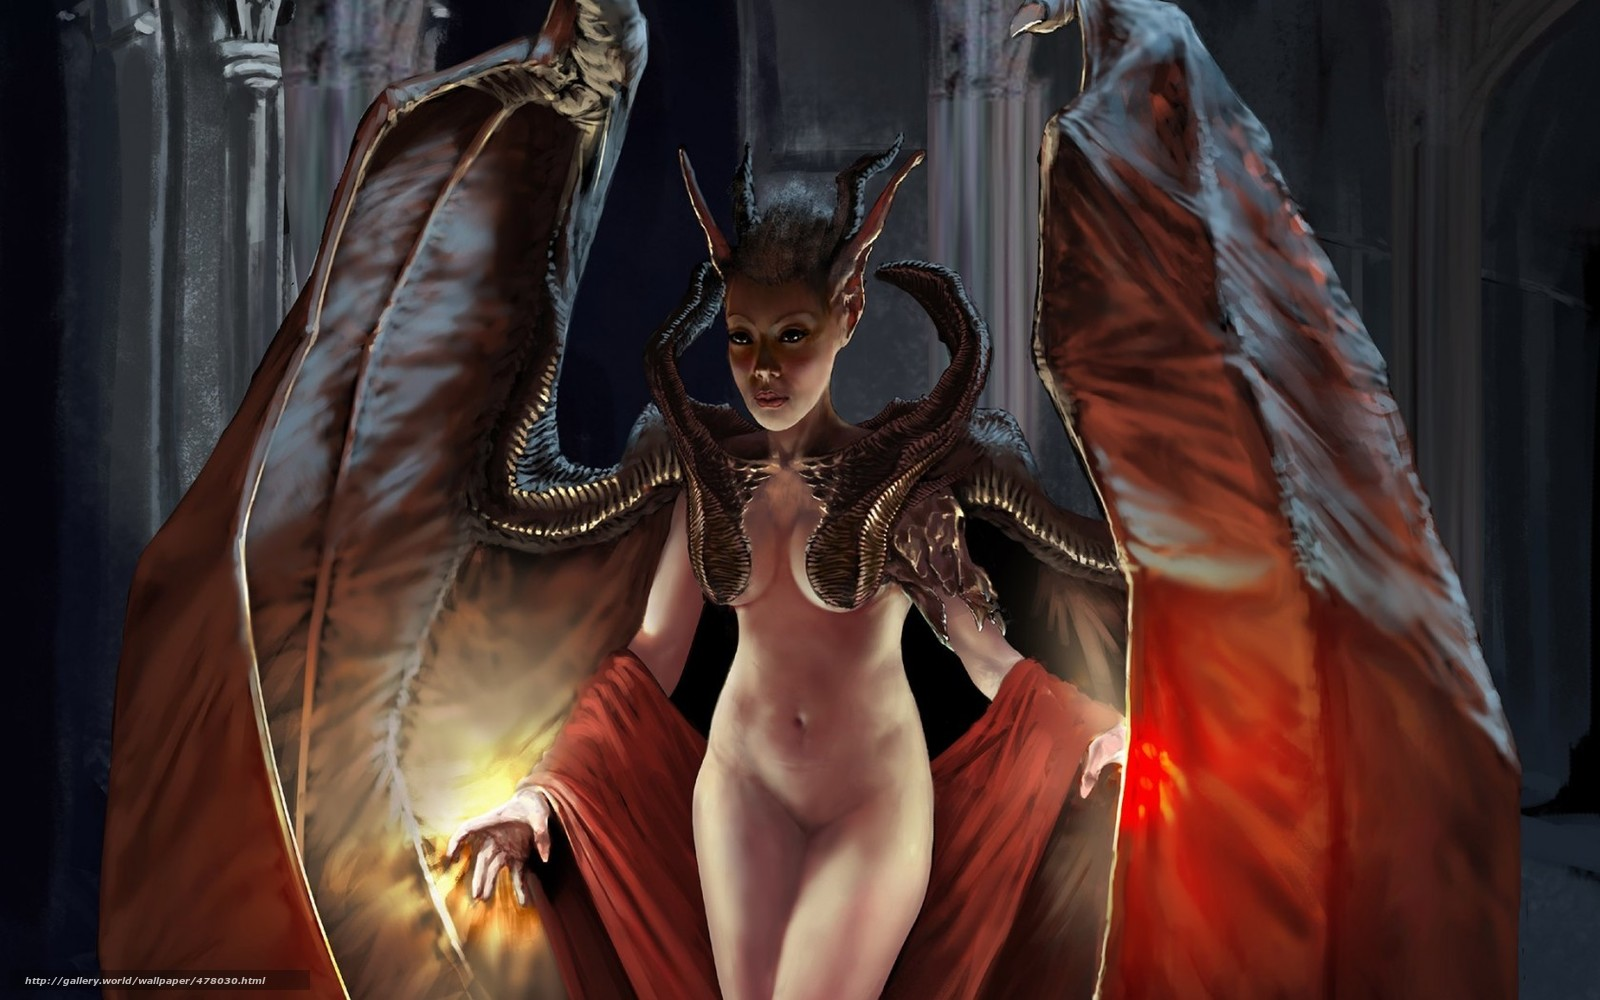 Nude girl demon pictures sexy picture